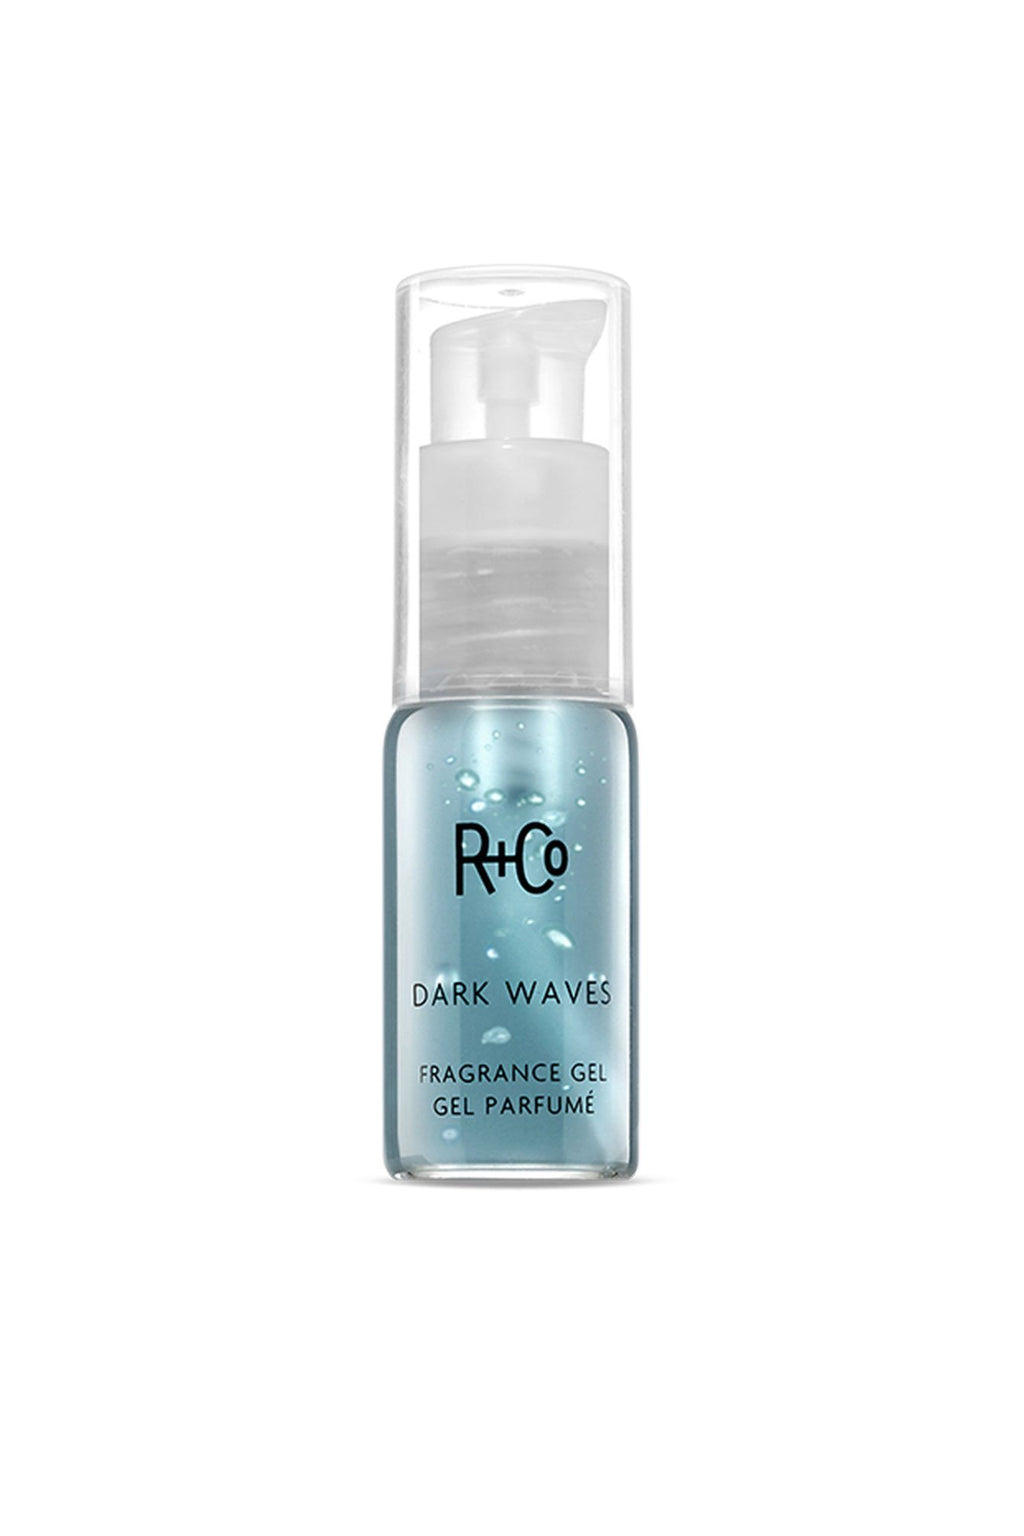 R+CO | Dark Waves Frangrance Gel